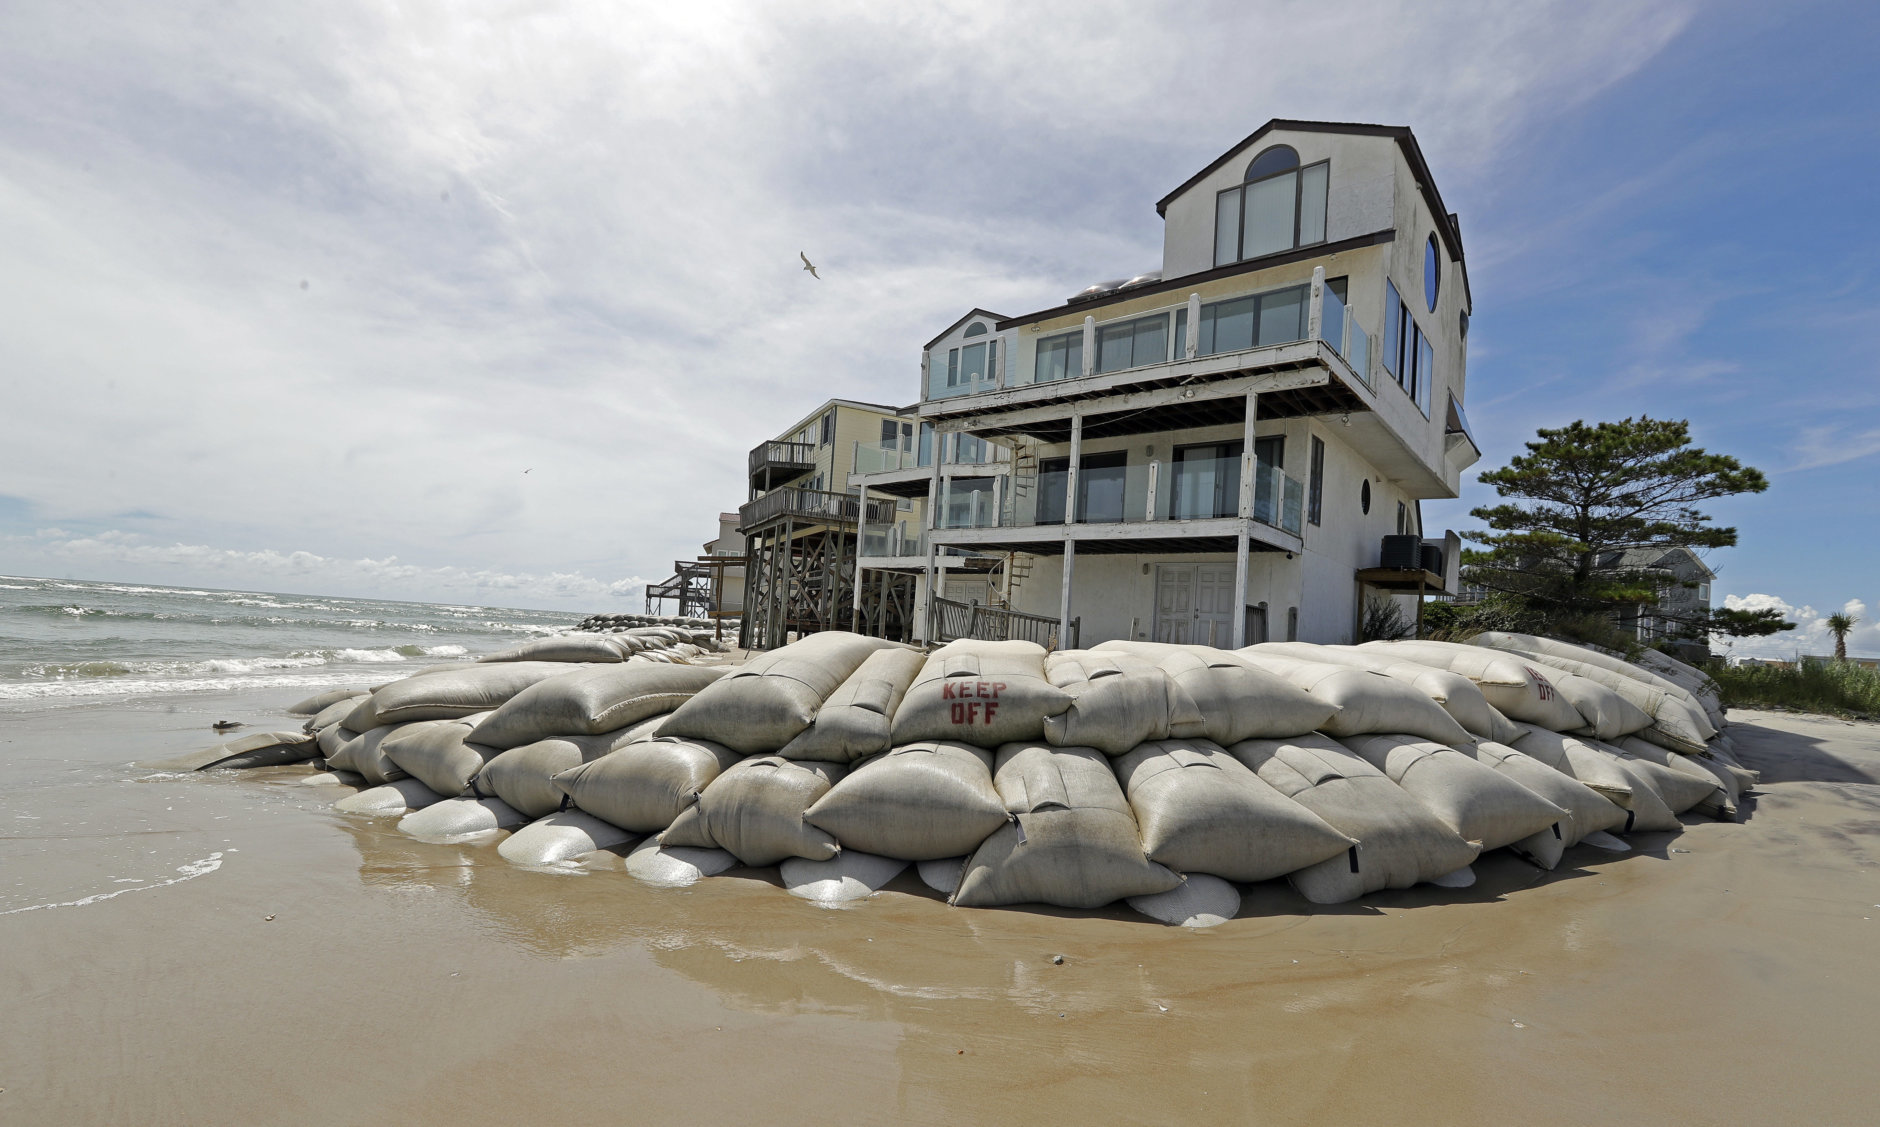 Sand bags surround homes on North Topsail Beach, N.C., Wednesday, Sept. 12, 2018, as Hurricane Florence threatens the coast. (AP Photo/Chuck Burton)